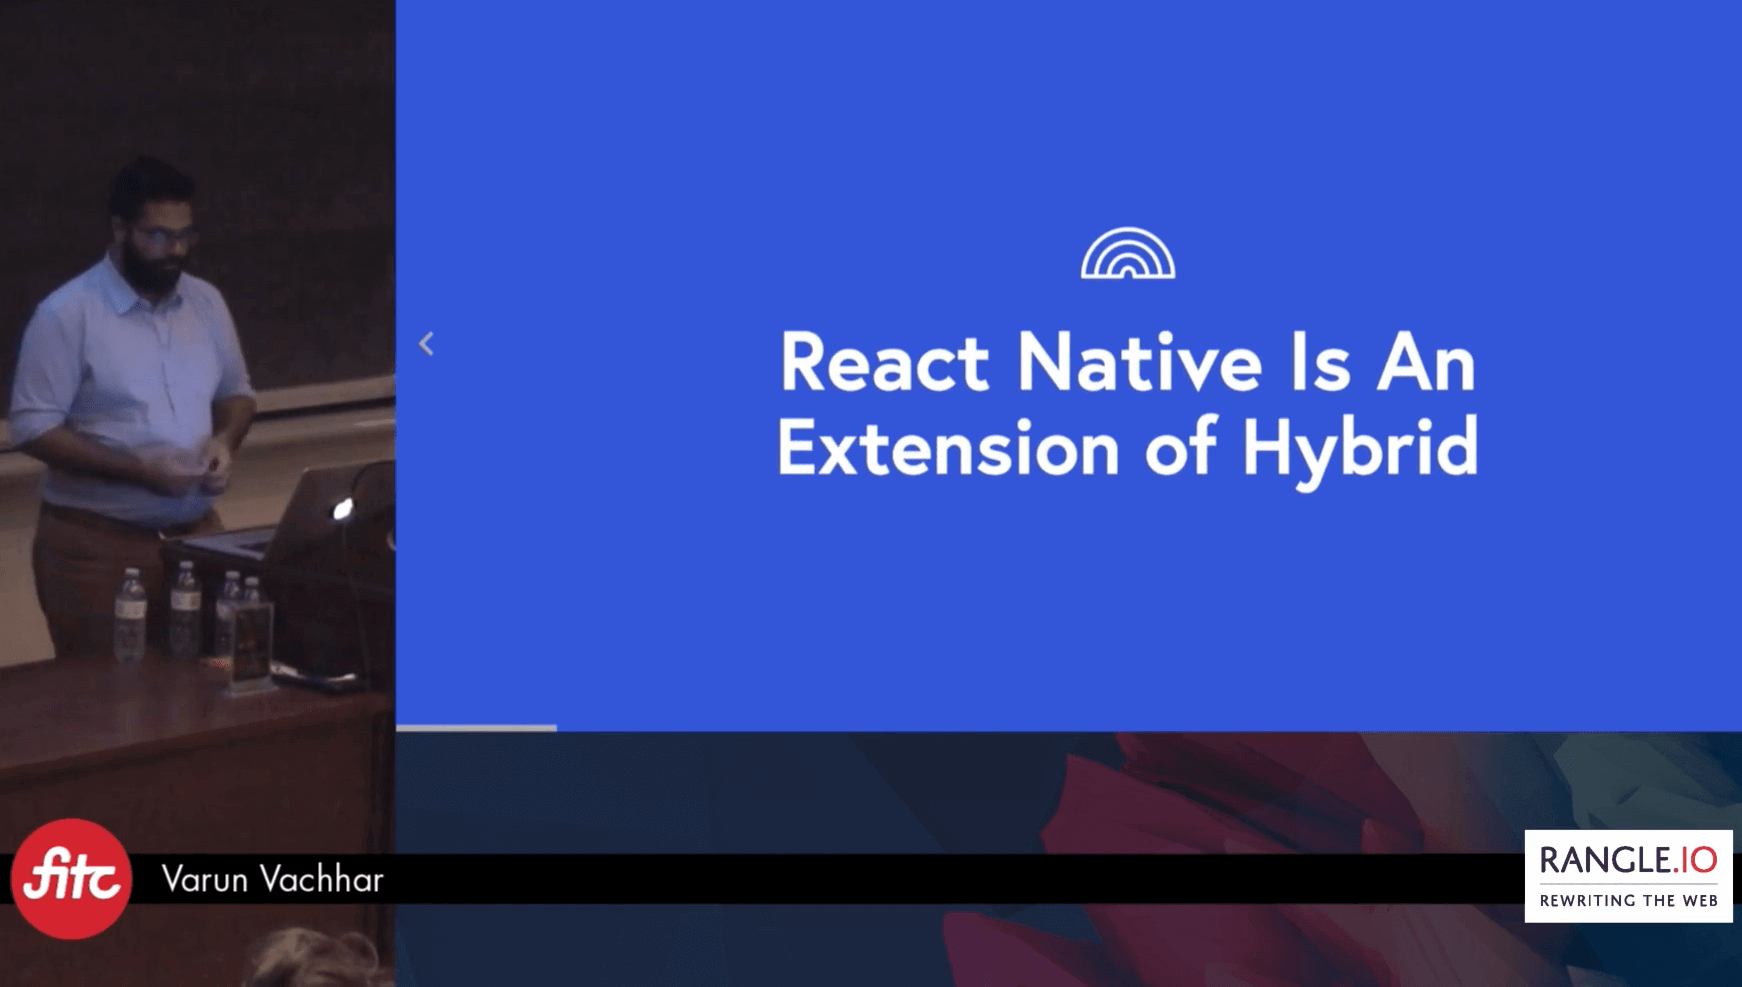 Varun Vachhar presents an Intro To React Native